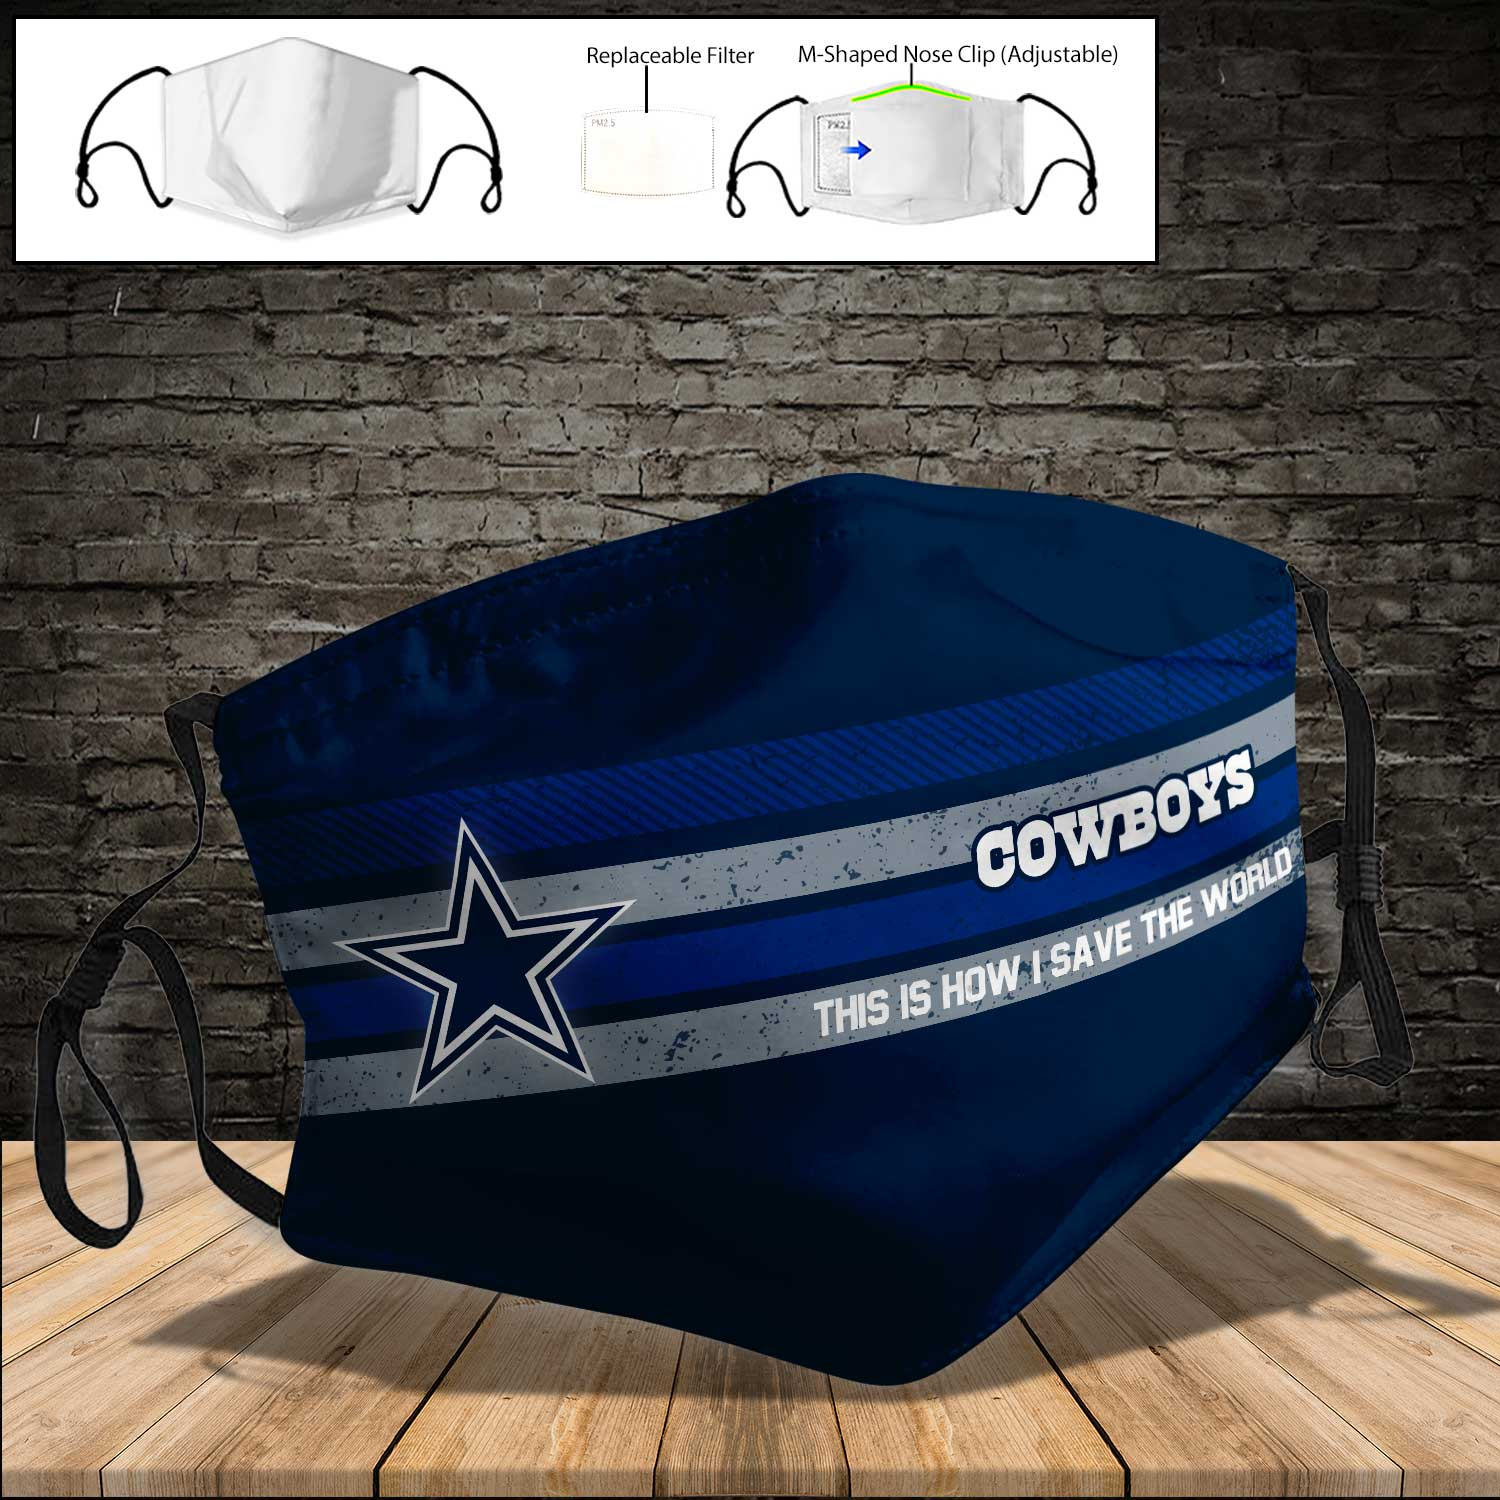 Dallas cowboys this is how i save the world full printing face mask 4